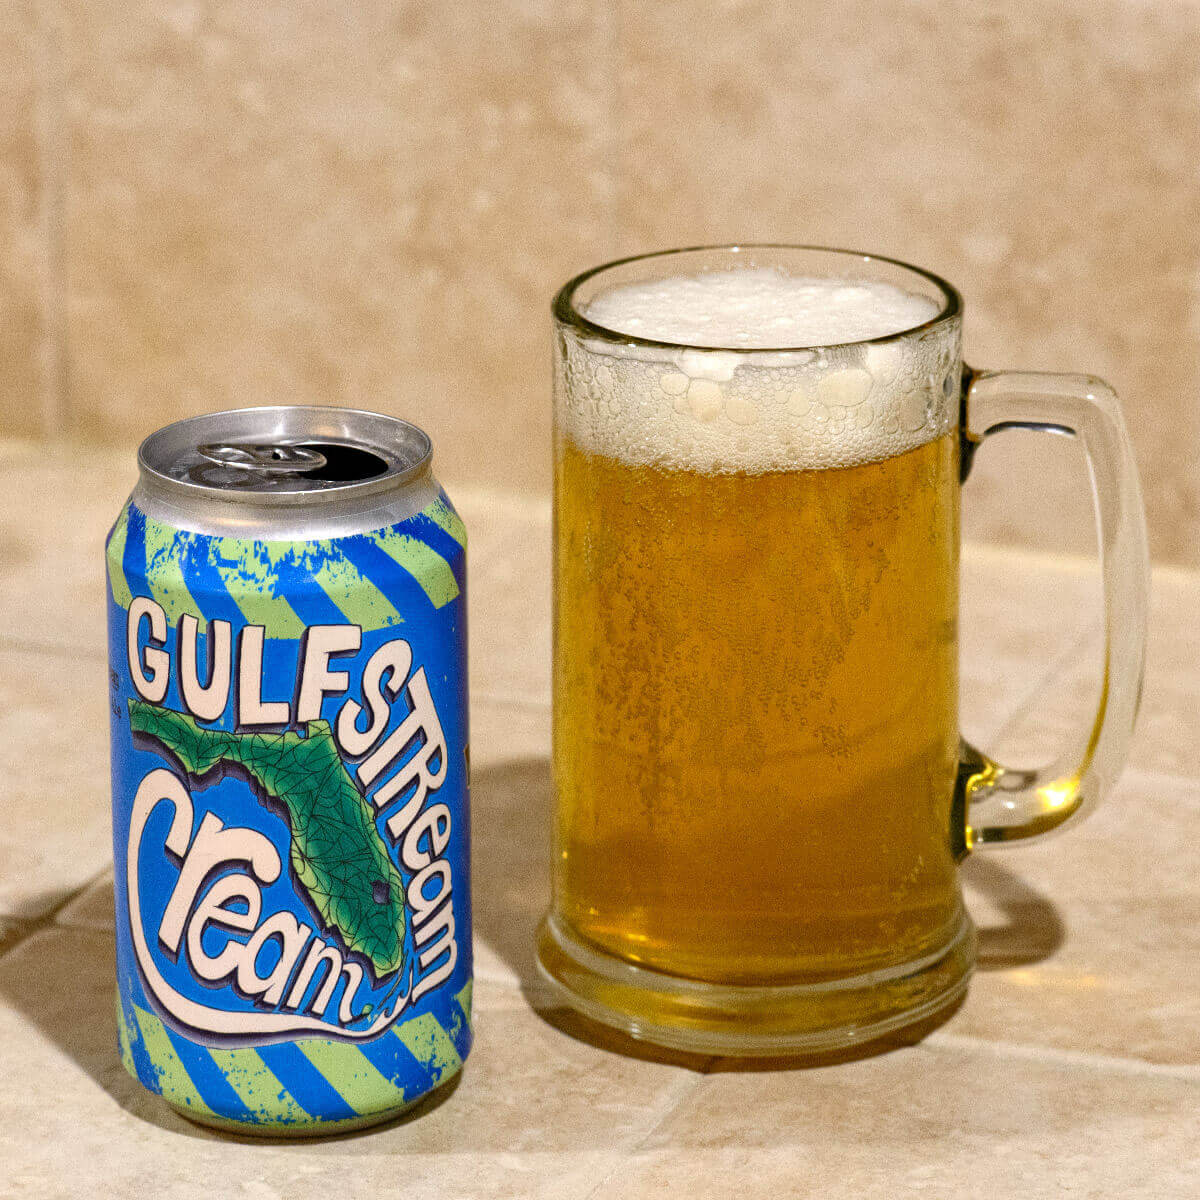 Gulfstream Cream, a Cream Ale brewed by LauderAle has an approachable flavor and is easy to drink. Light and refreshing, it makes for a delightful lawnmower beer.